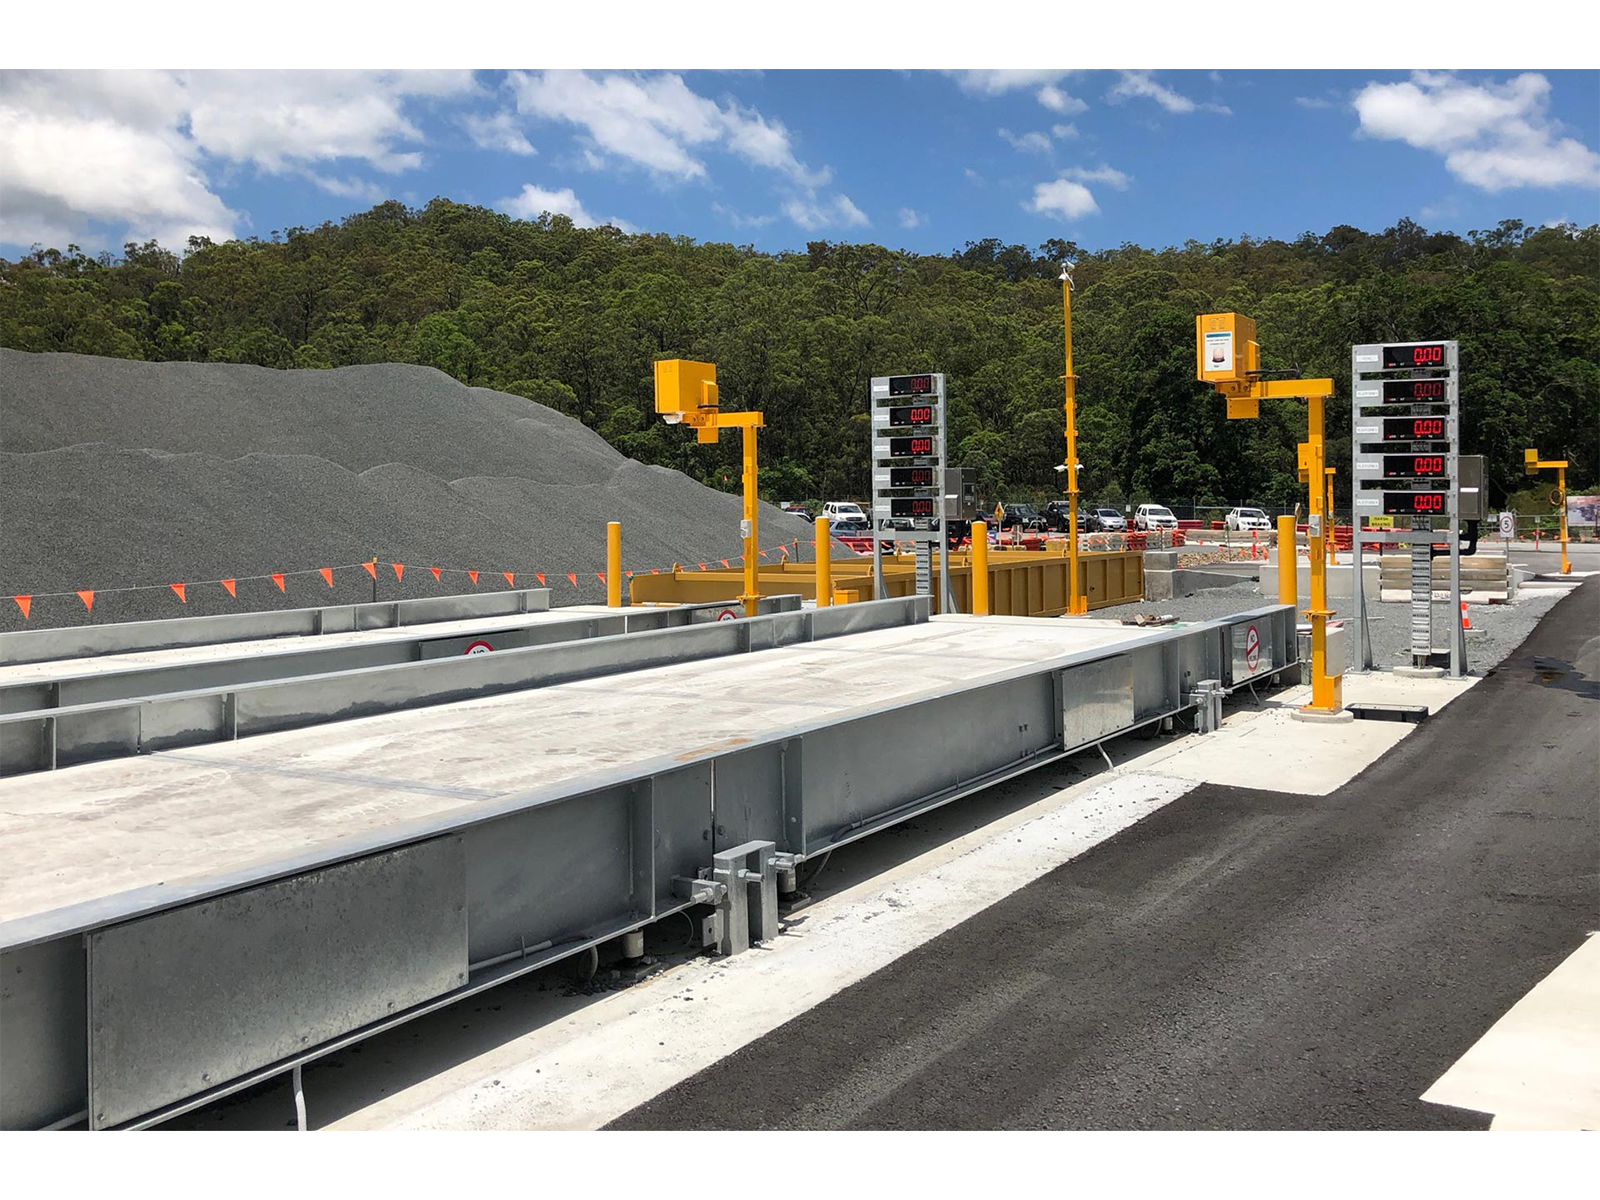 Above-ground weighbridge at quarry